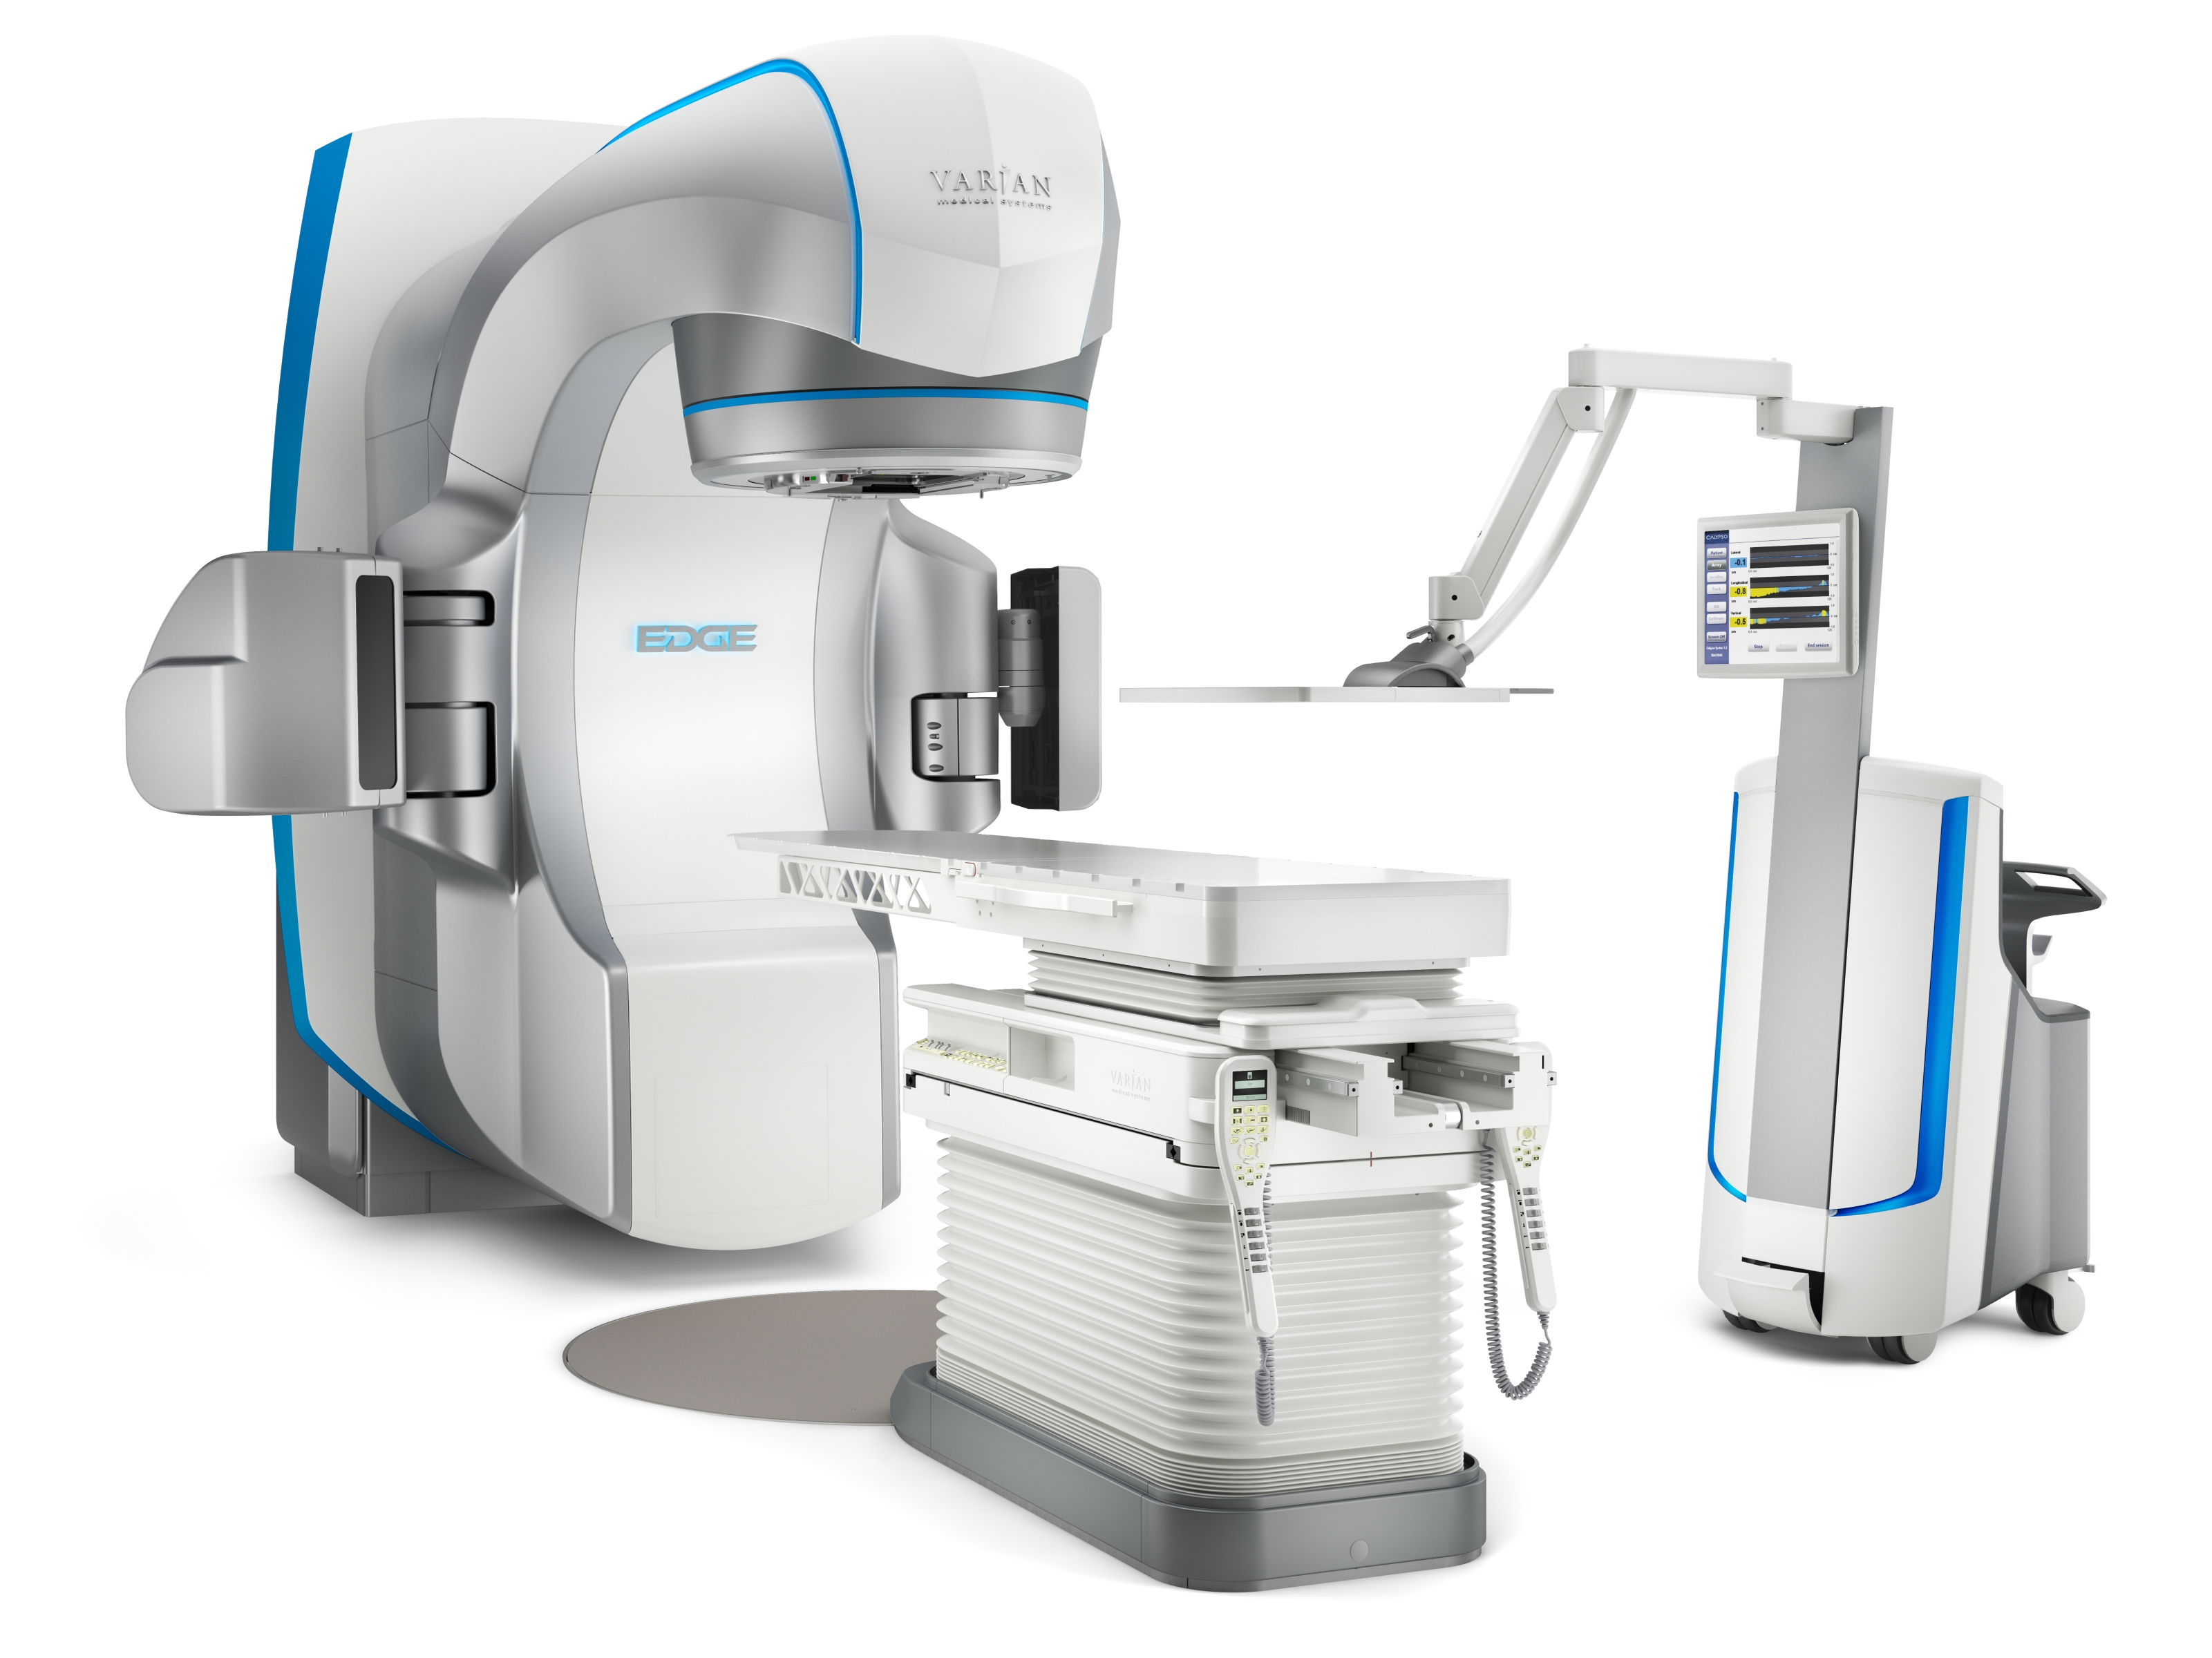 Image: The EDGE Radiosurgery Suite (Photo courtesy of Varian Medical).